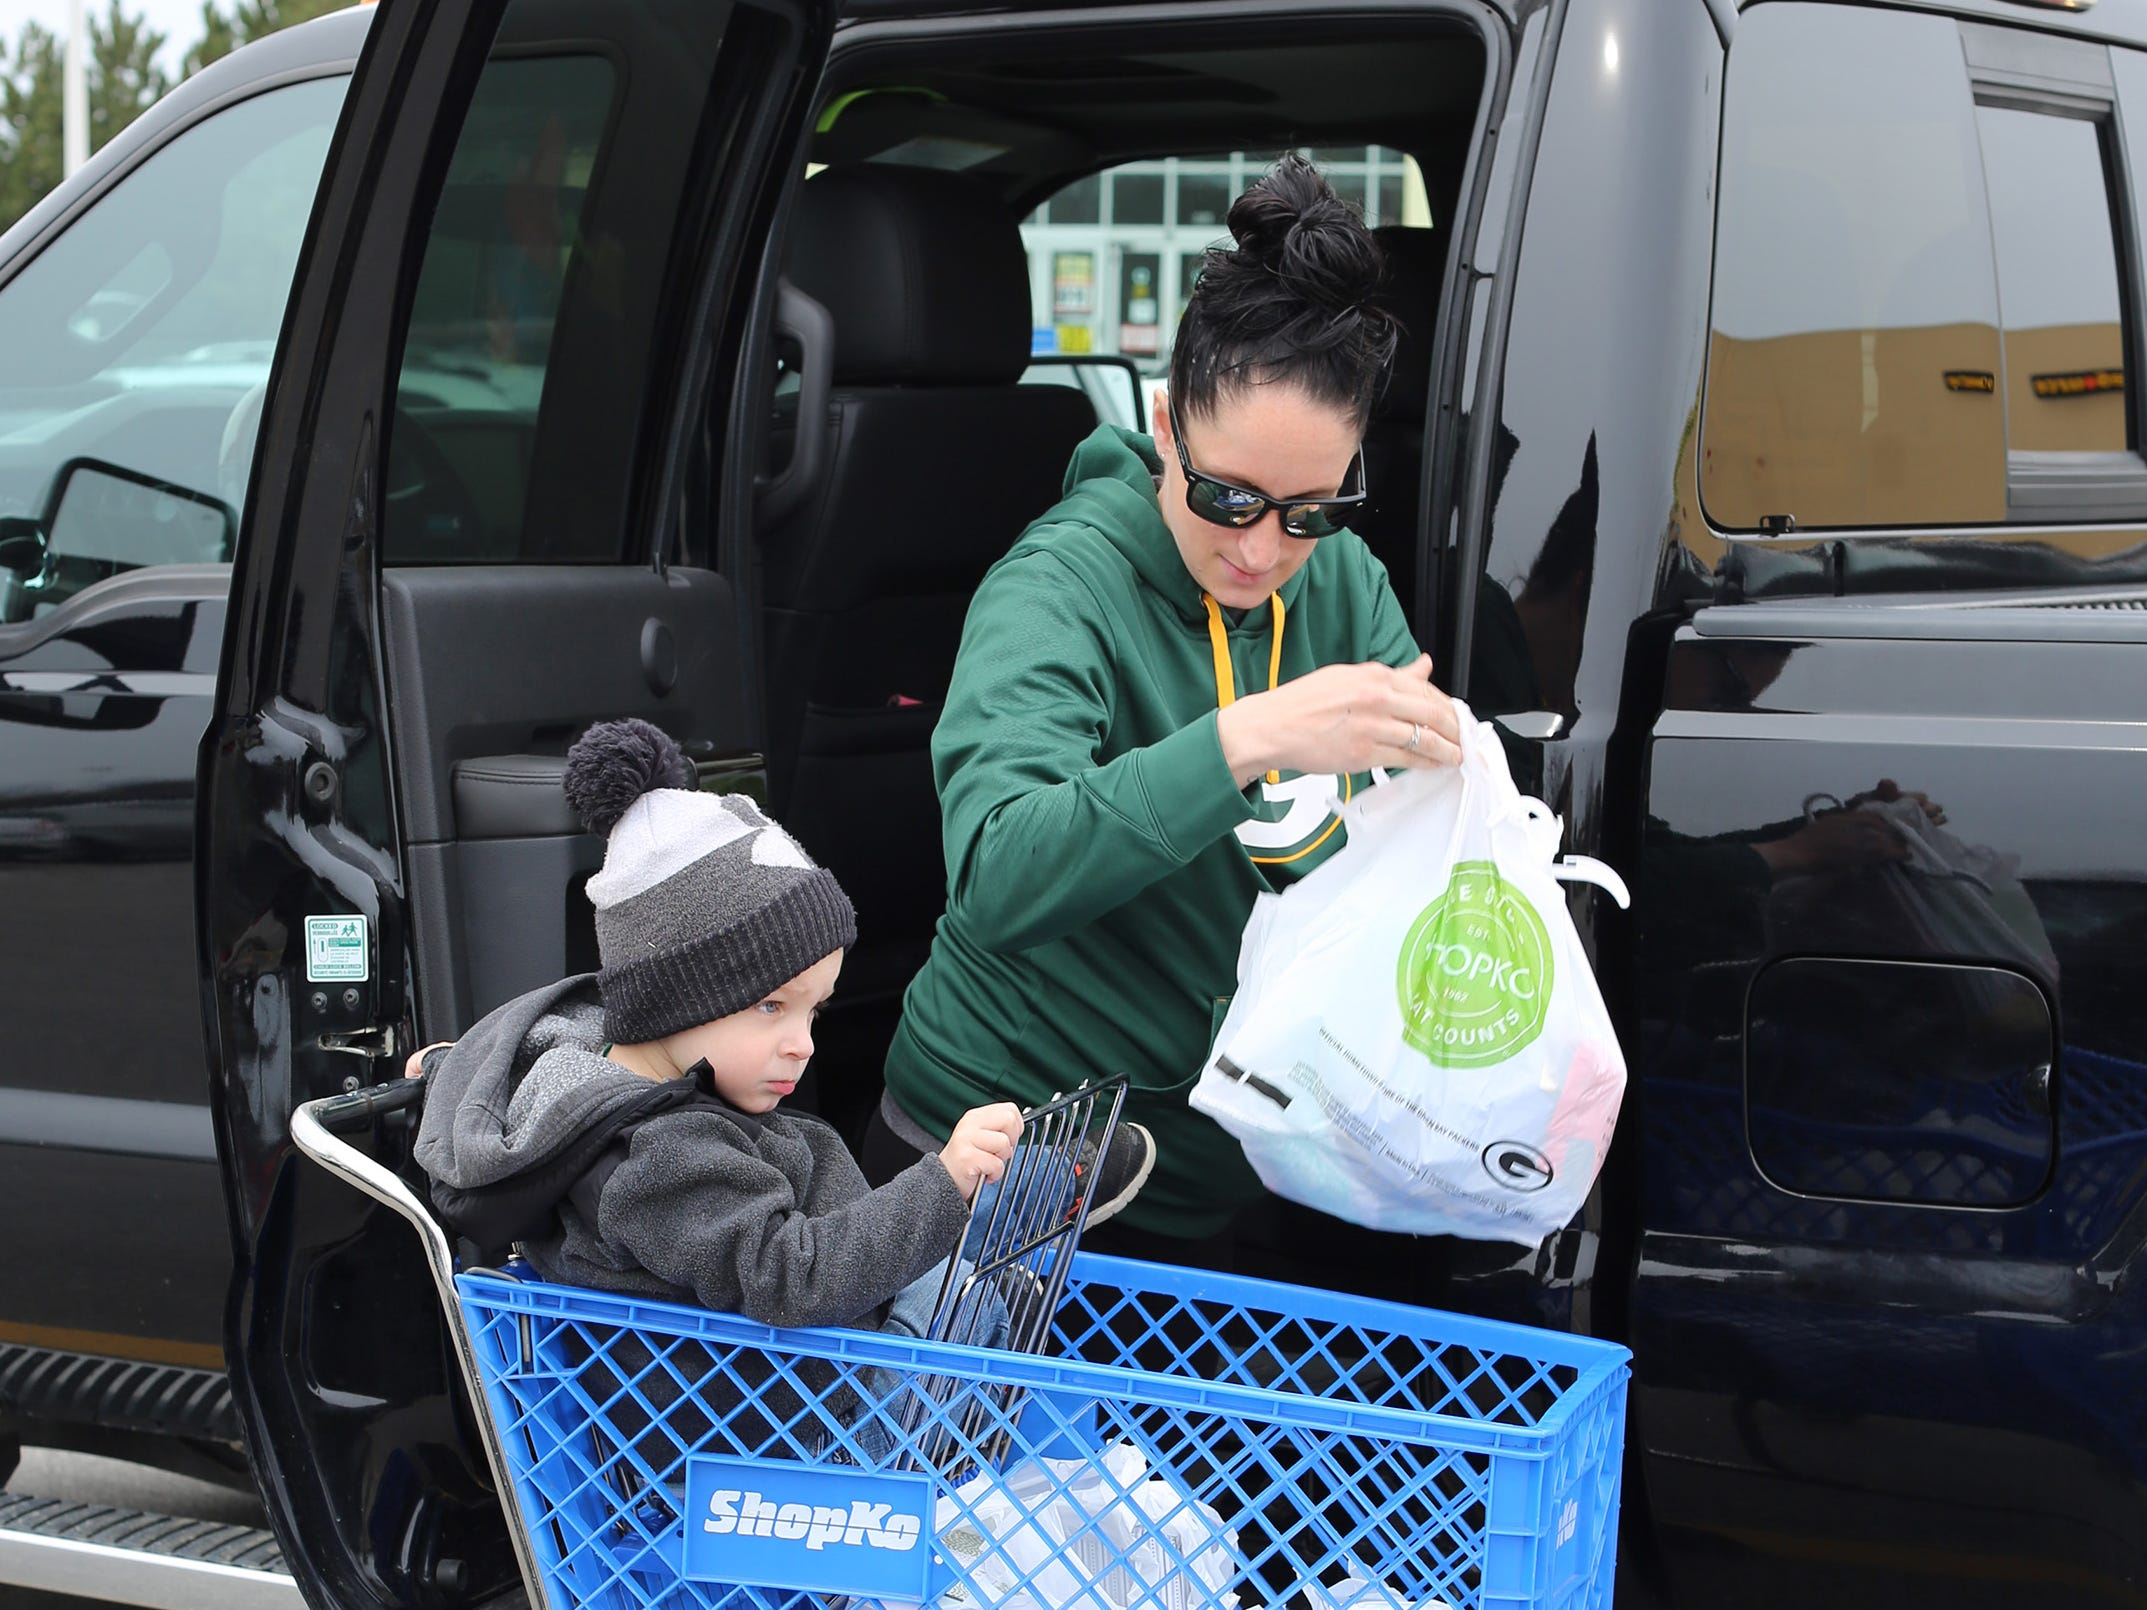 """Samantha Jones of Sheboygan Falls, Wis. takes bags of clothes she bought at ShopKo, Saturday, May 11, 2019, in Sheboygan, Wis. Jones, who was with her son Nicholas, 2, said, """"It is what it is. A lot of stores are closing."""""""